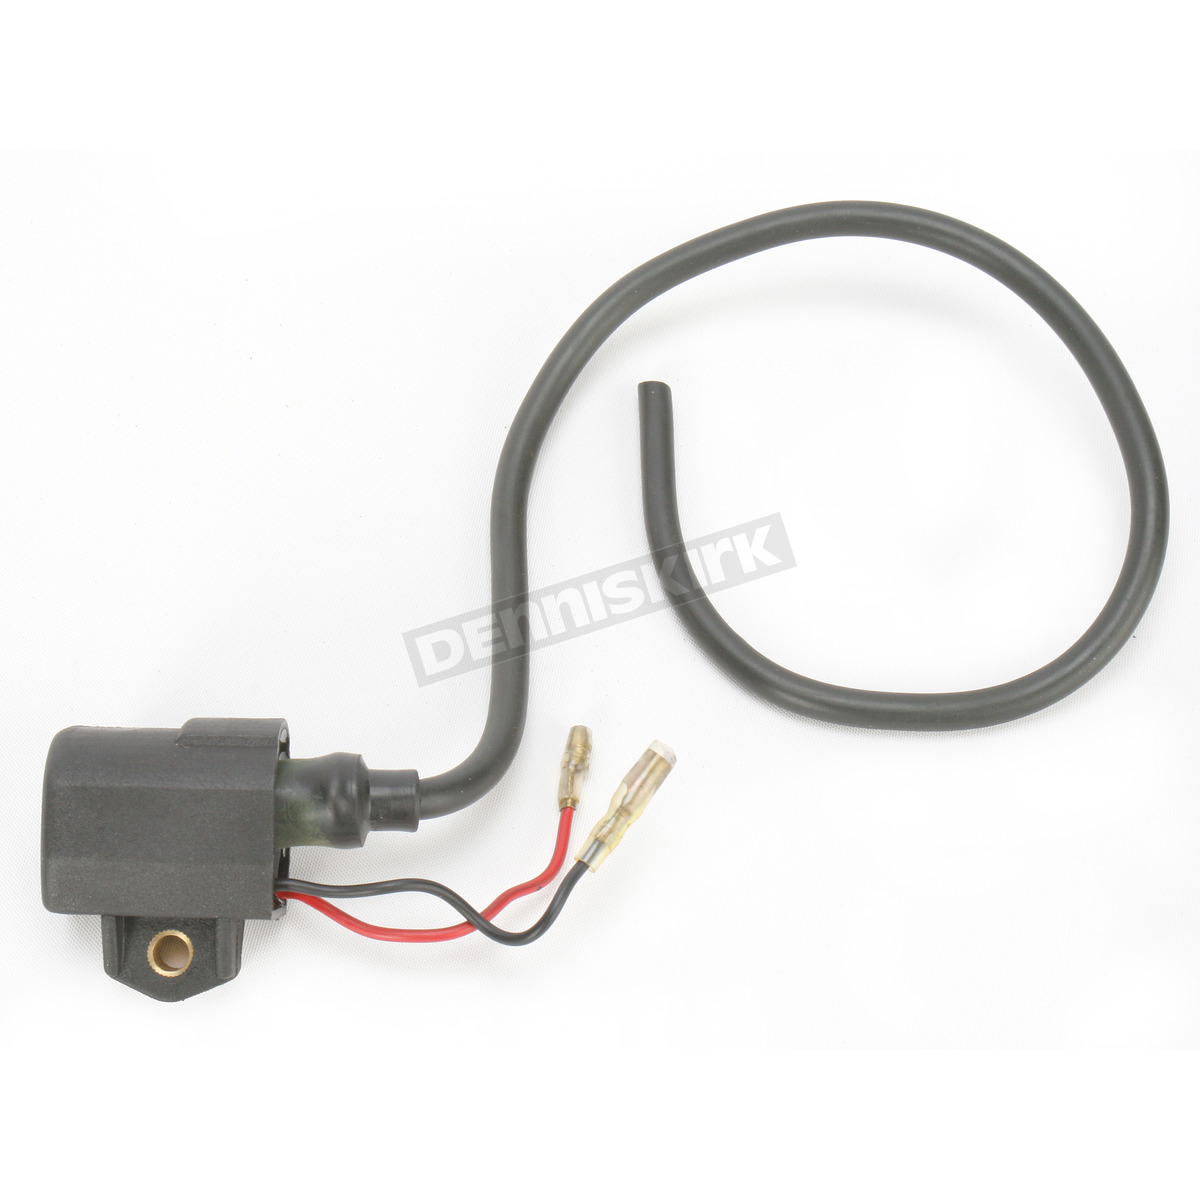 dk200236 100 [ 01 xc 600 owners manual ] kimpex oem style replacement  at readyjetset.co